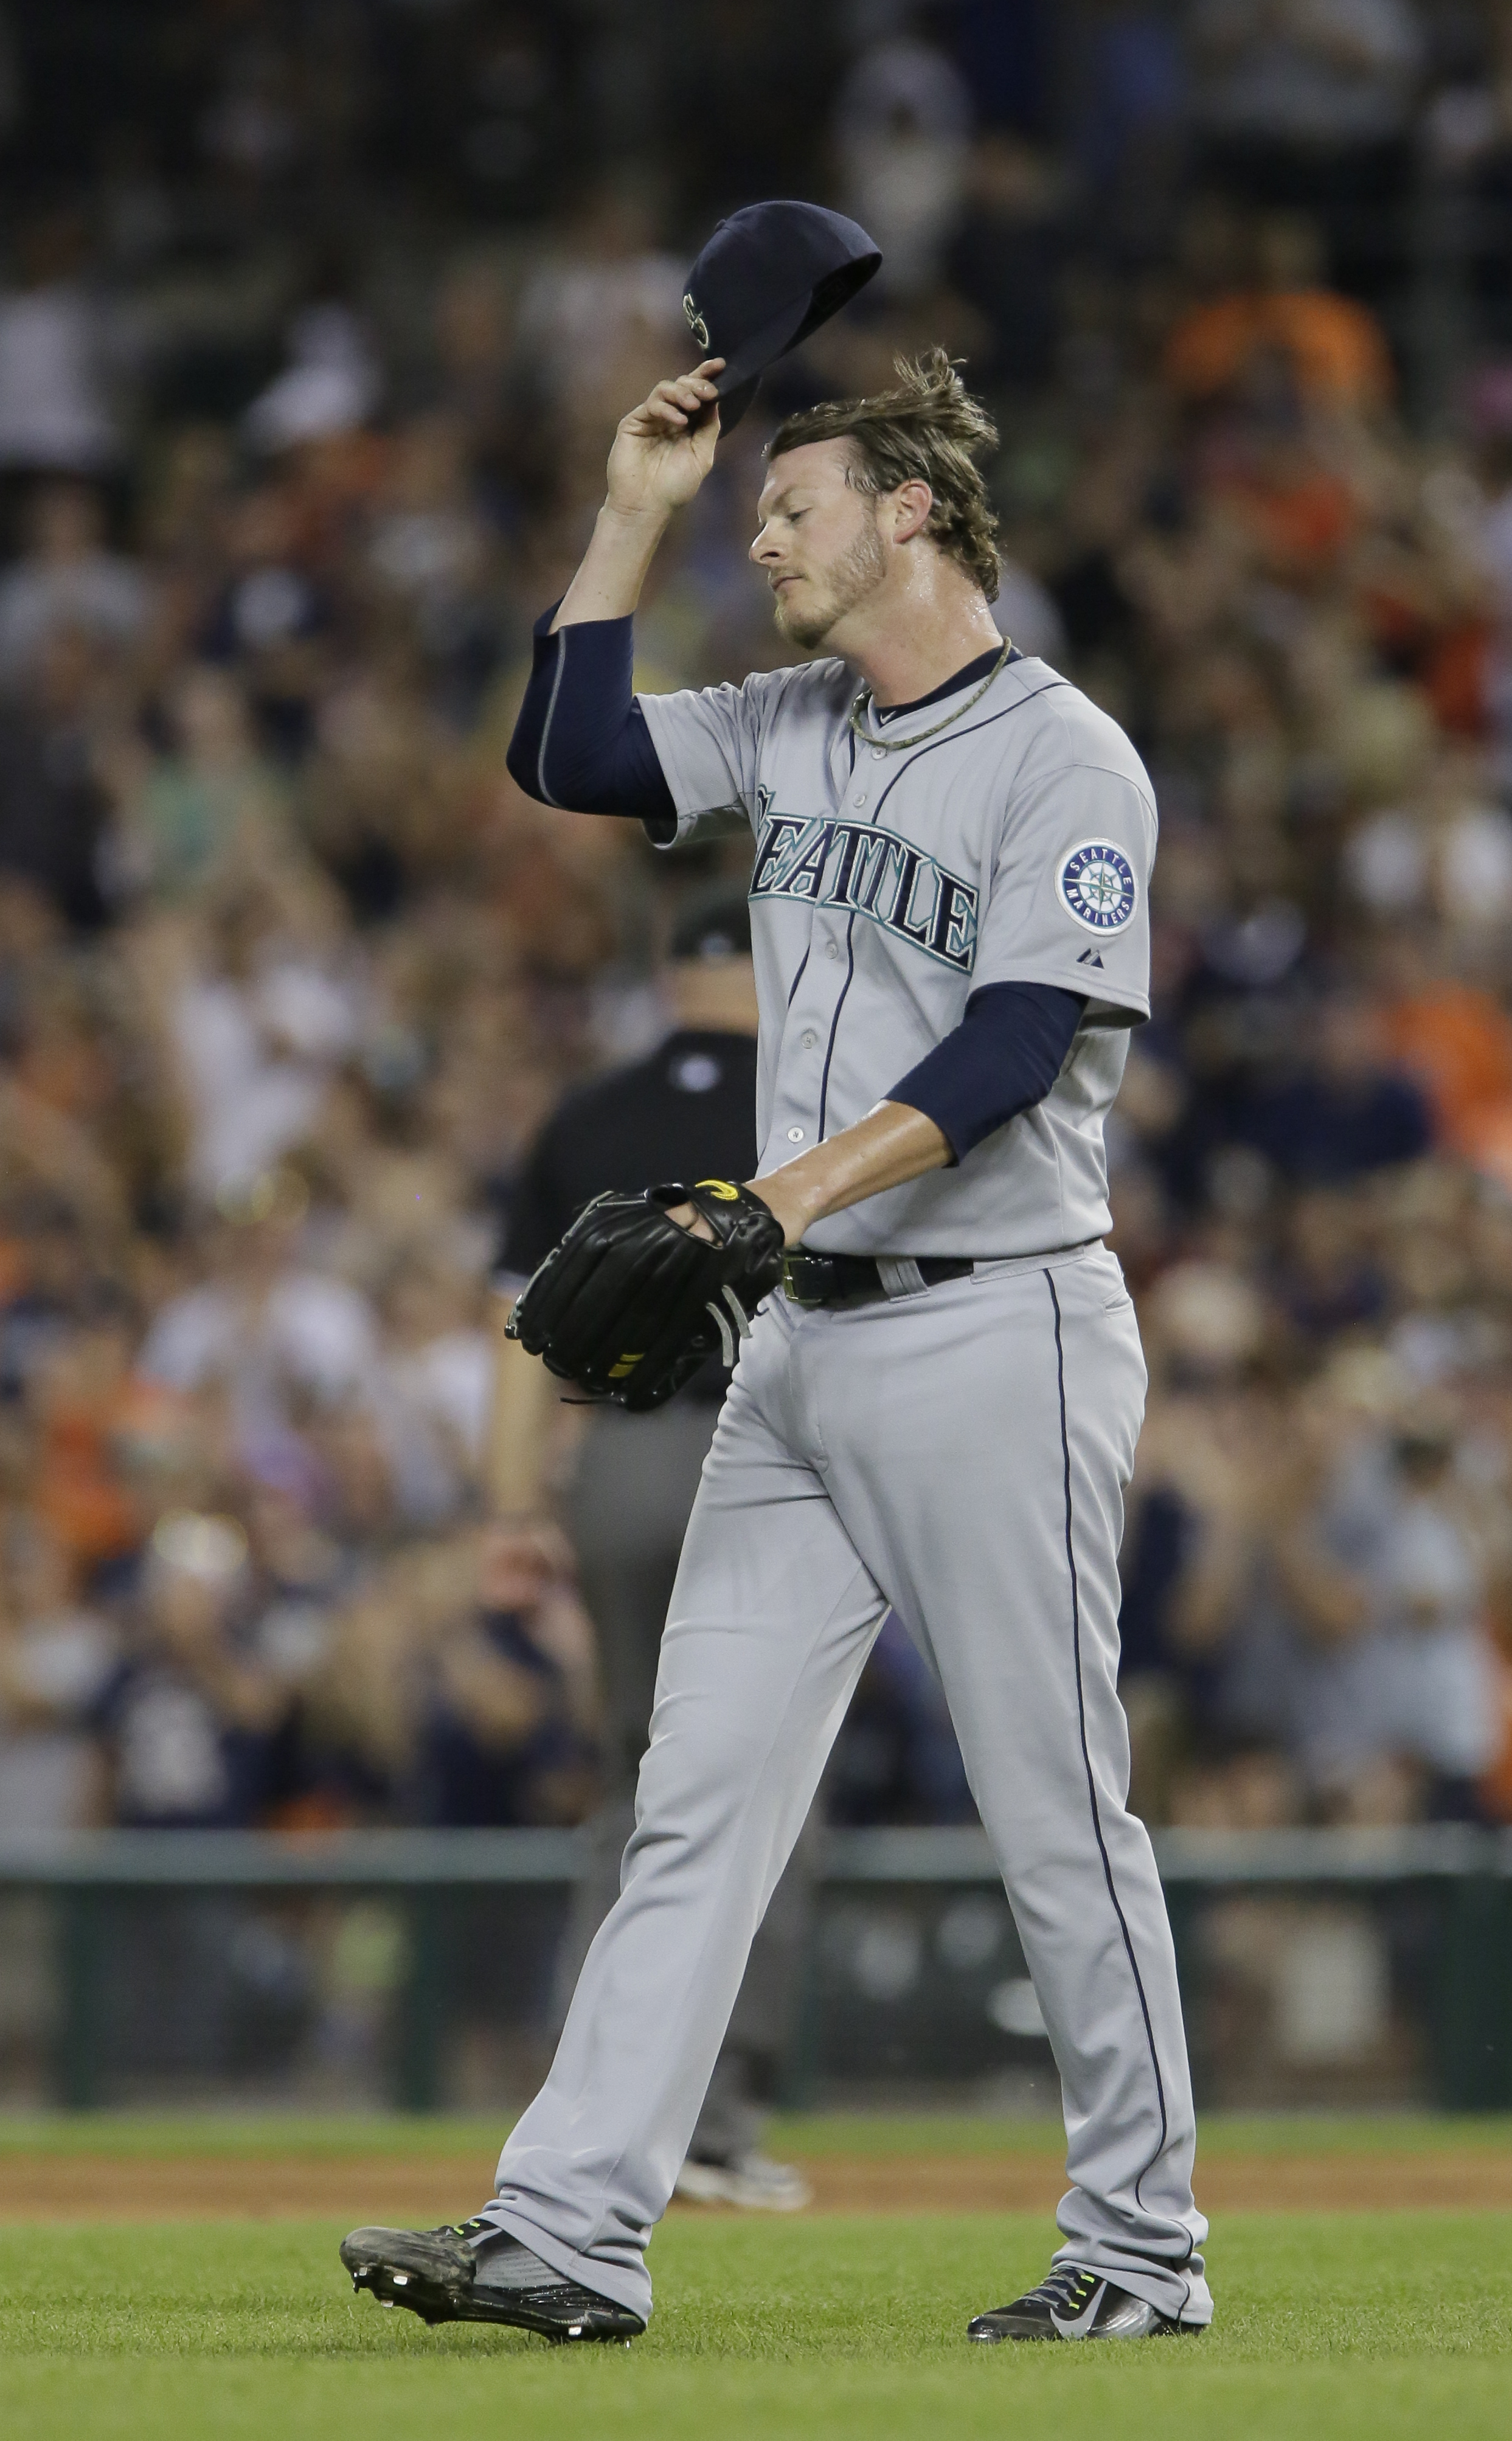 Seattle Mariners' Mark Lowe reacts after giving up a two-run home run to Detroit Tigers' Ian Kinsler during the eighth inning of a baseball game Monday, July 20, 2015 in Detroit. (AP Photo/Duane Burleson)